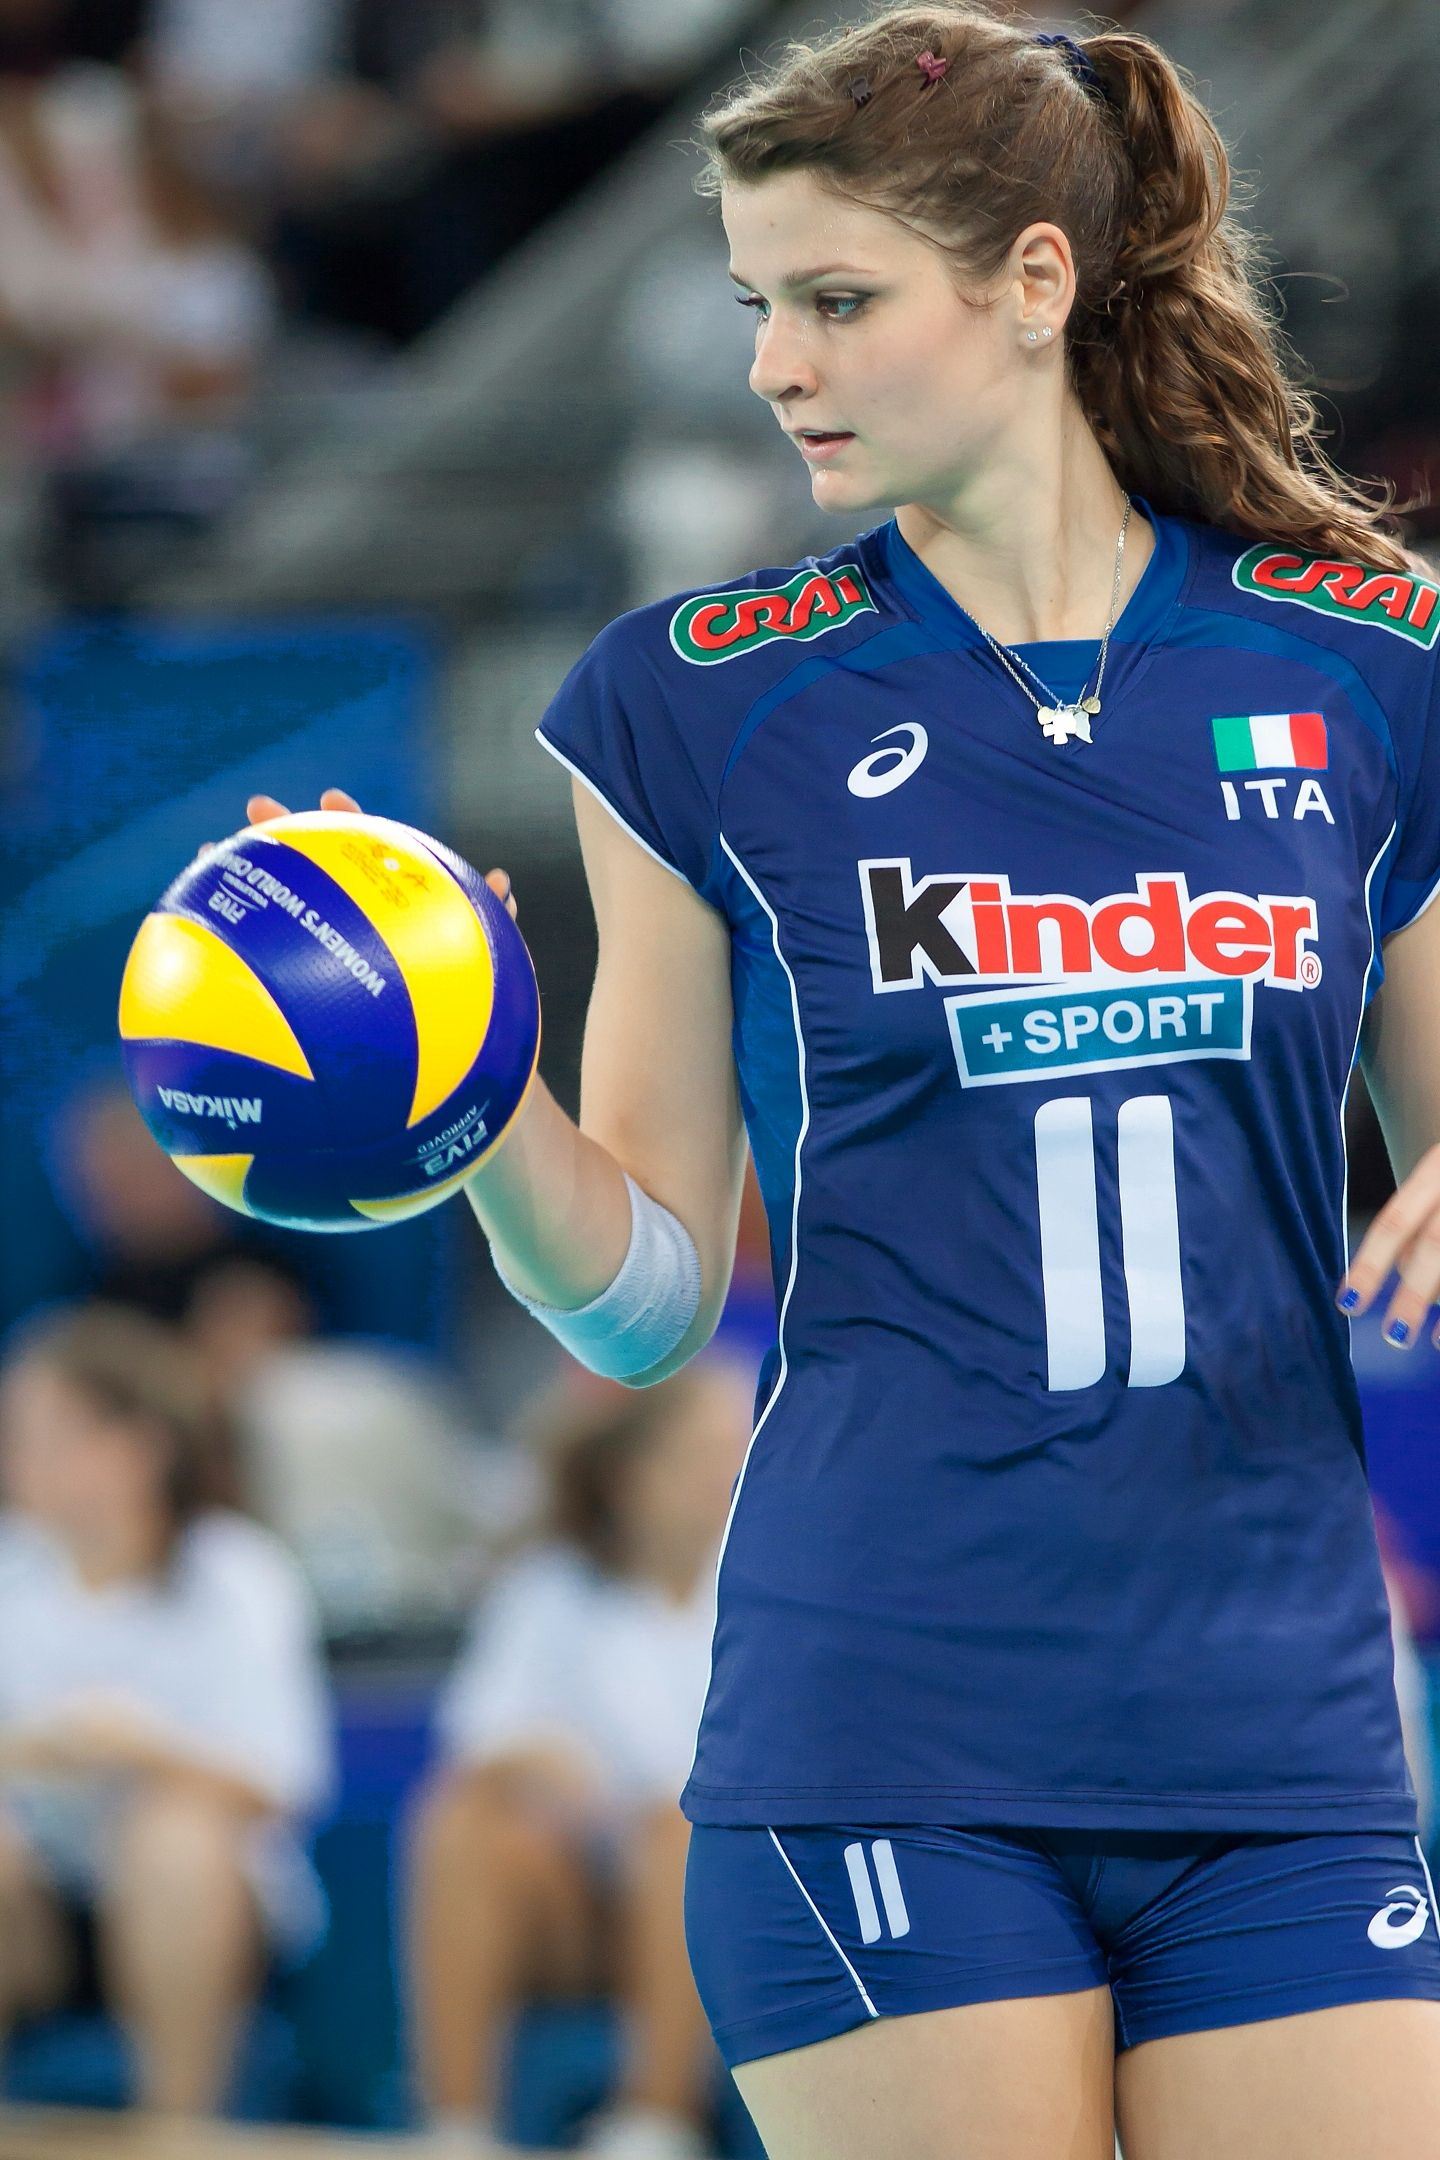 women's volleyball players - 736×1104